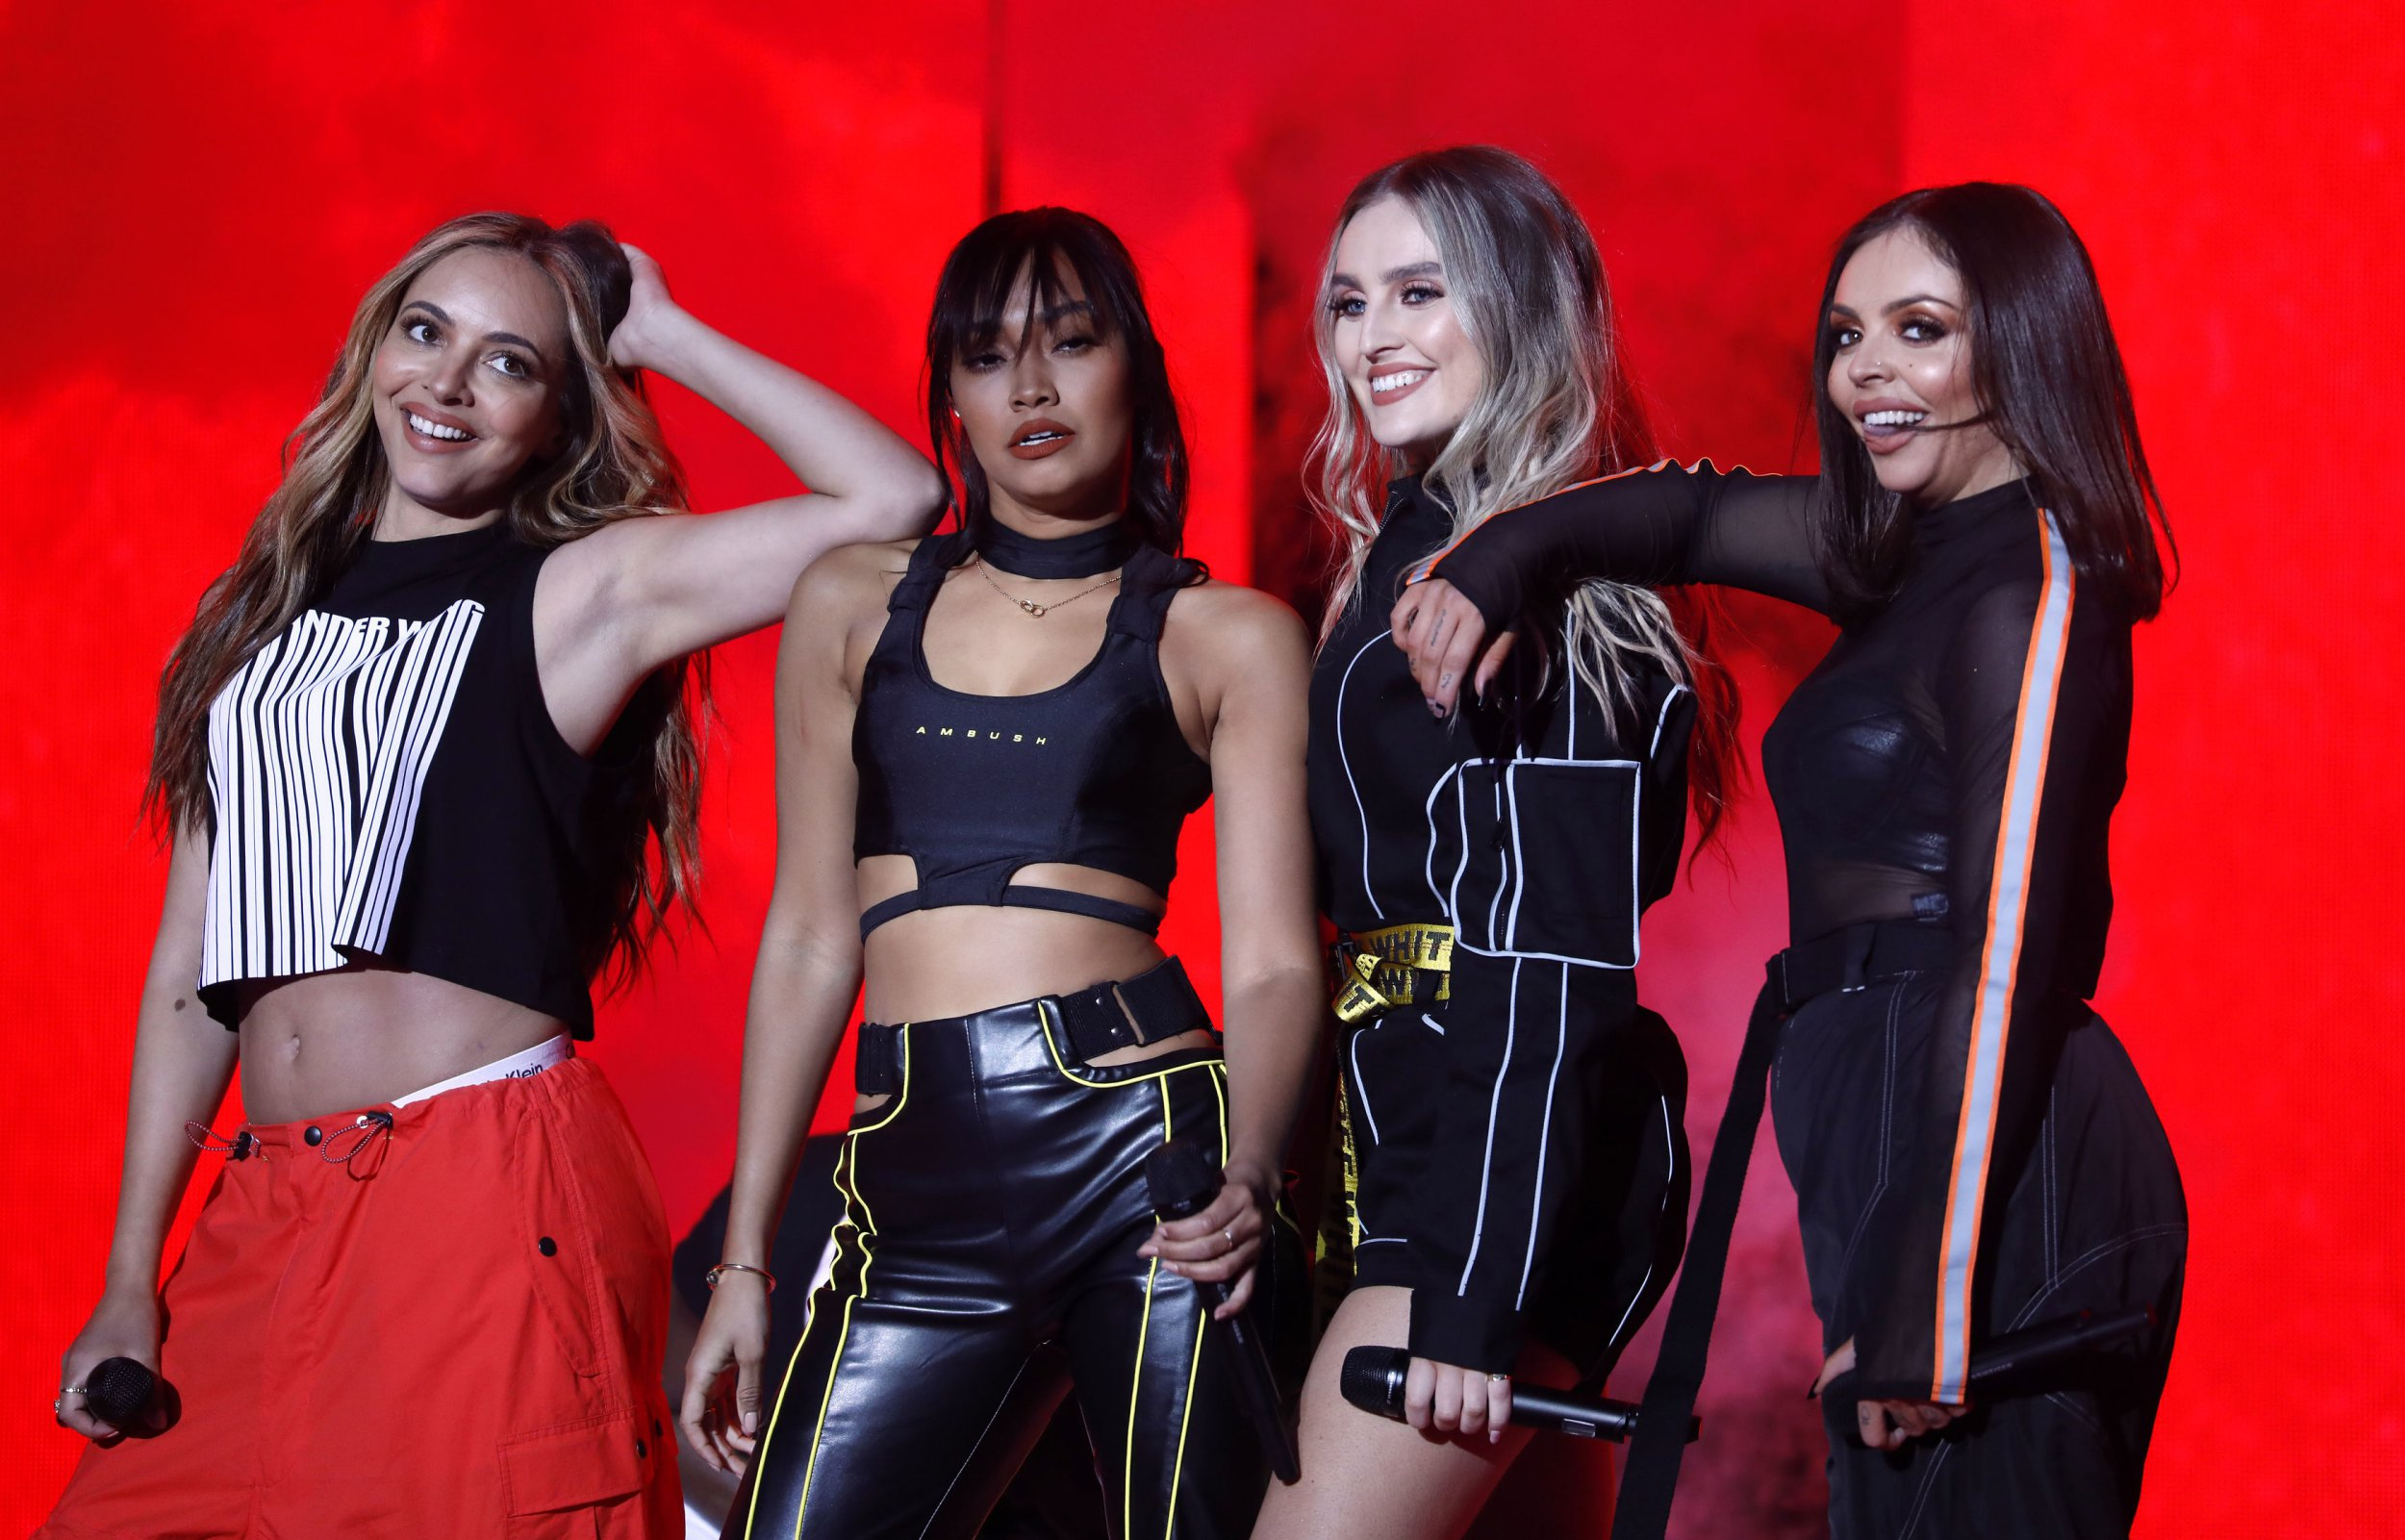 Jesy Nelson, Leigh-Anne Pinnock, Jade Thirlwall and Perrie Edwards of Little Mix perform on stage during The Global Awards 2019 with Very.co.uk held at London's Eventim Apollo Hammersmith. PRESS ASSOCIATION Photo. Picture date: Thursday March 7, 2019. Photo credit should read: David Parry/PA Wire